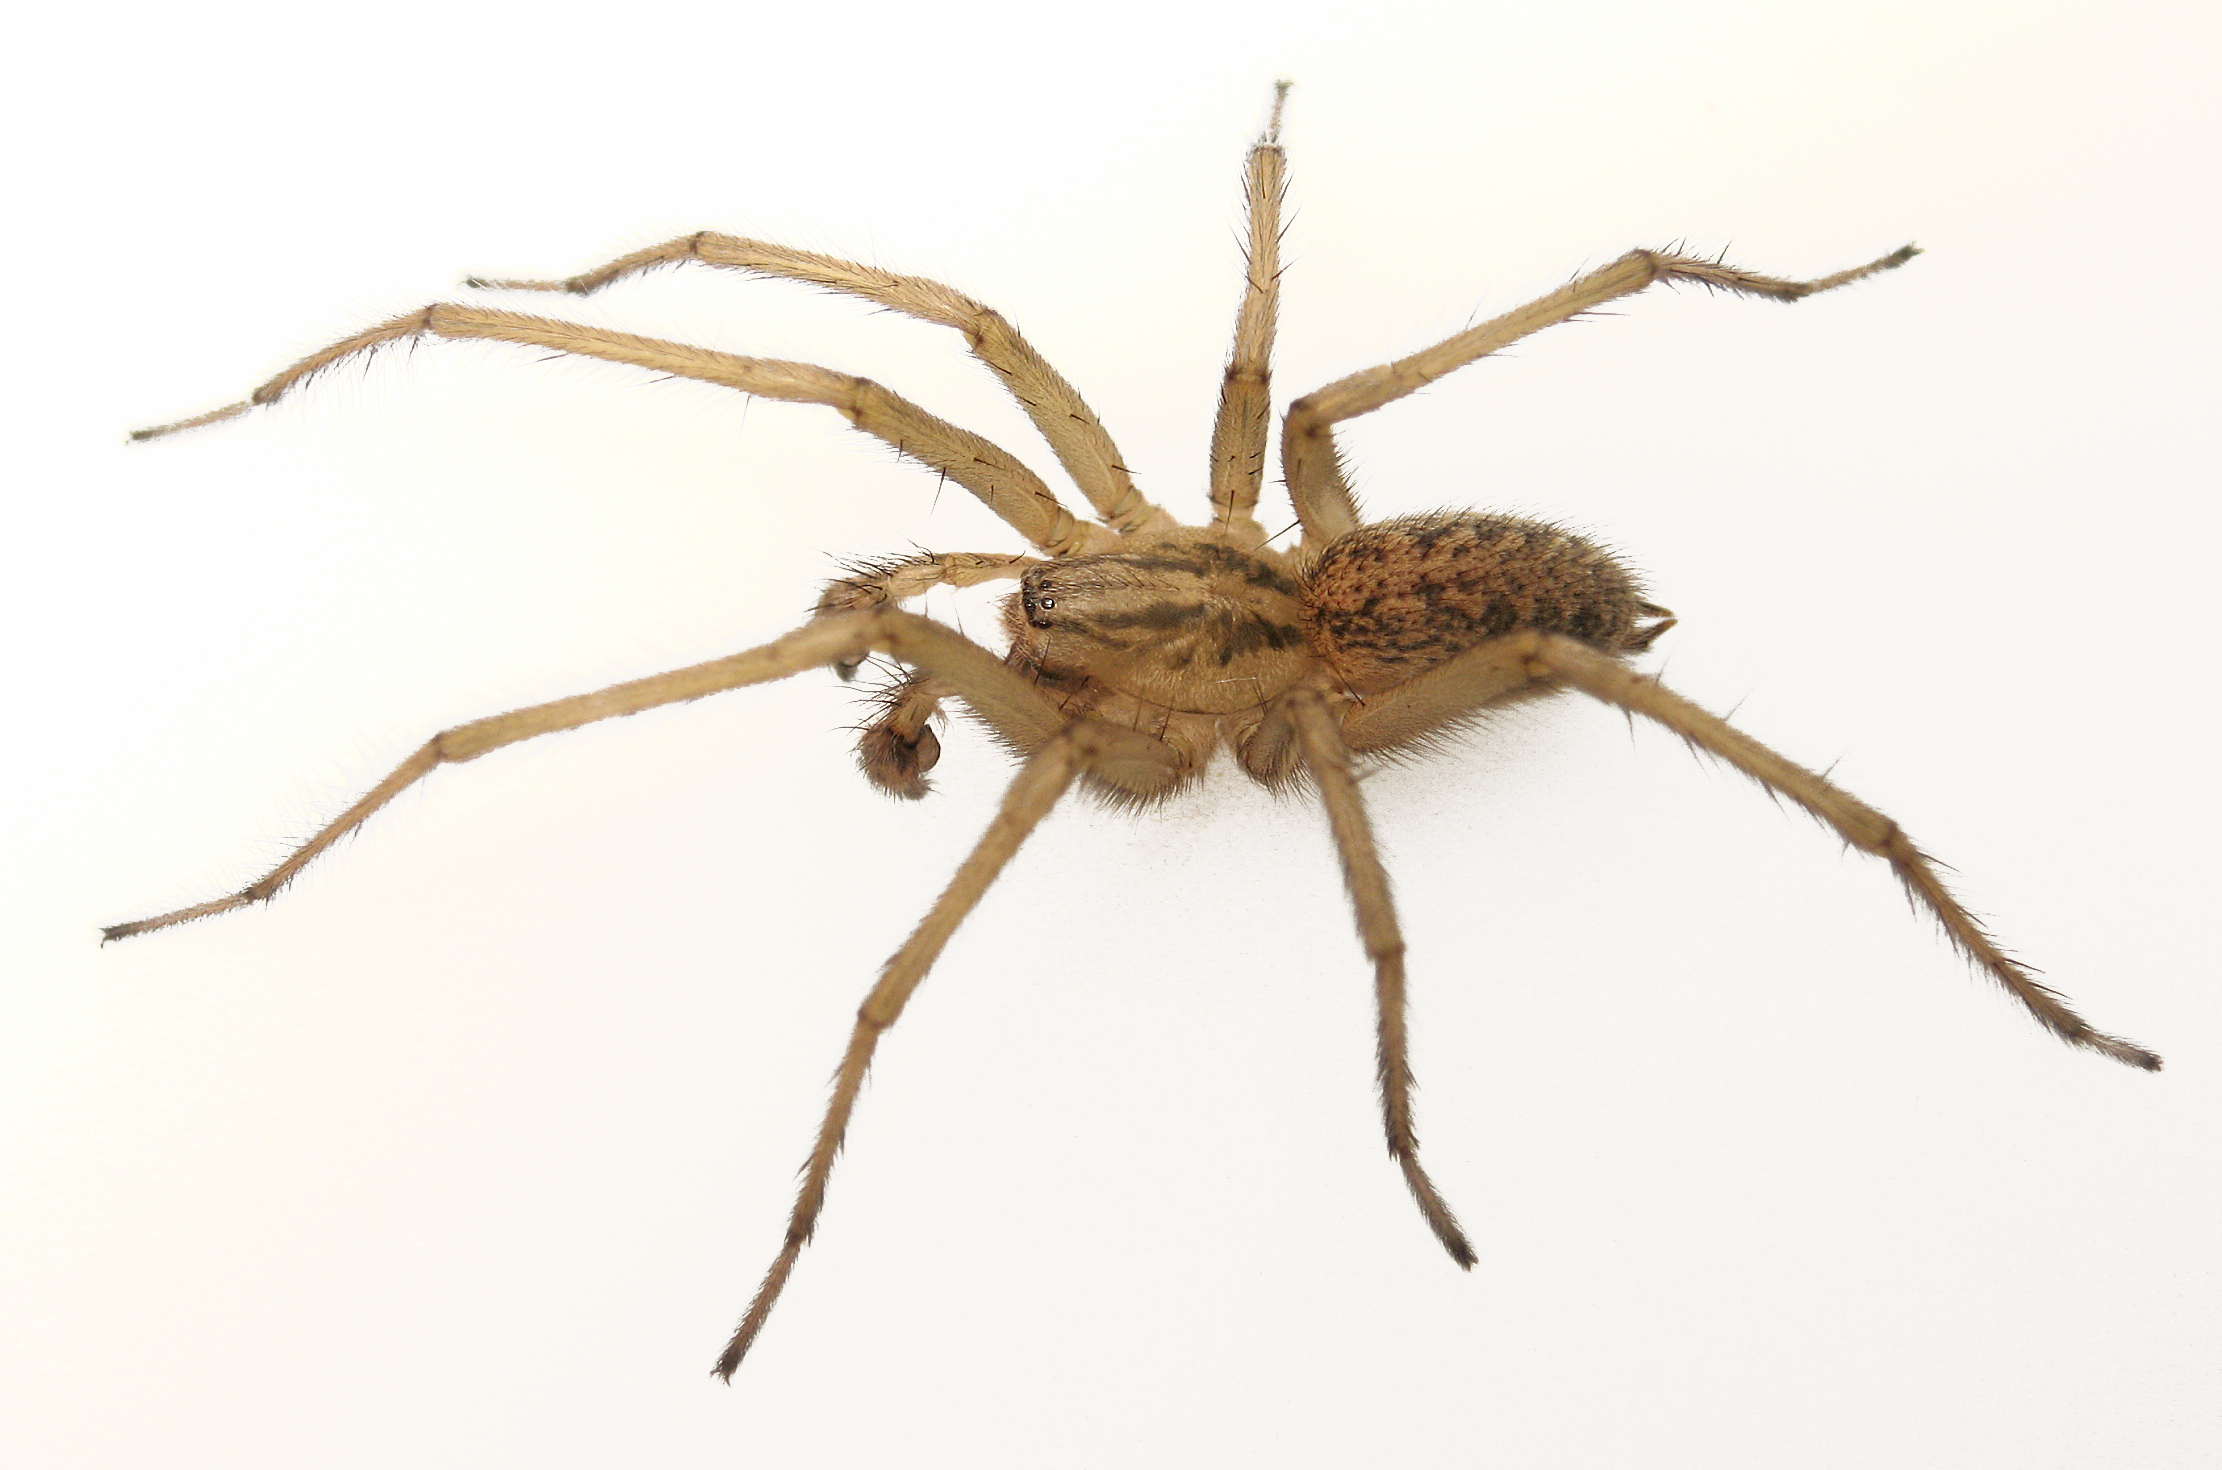 to get rid of mice how to get rid of spiders in house and basement